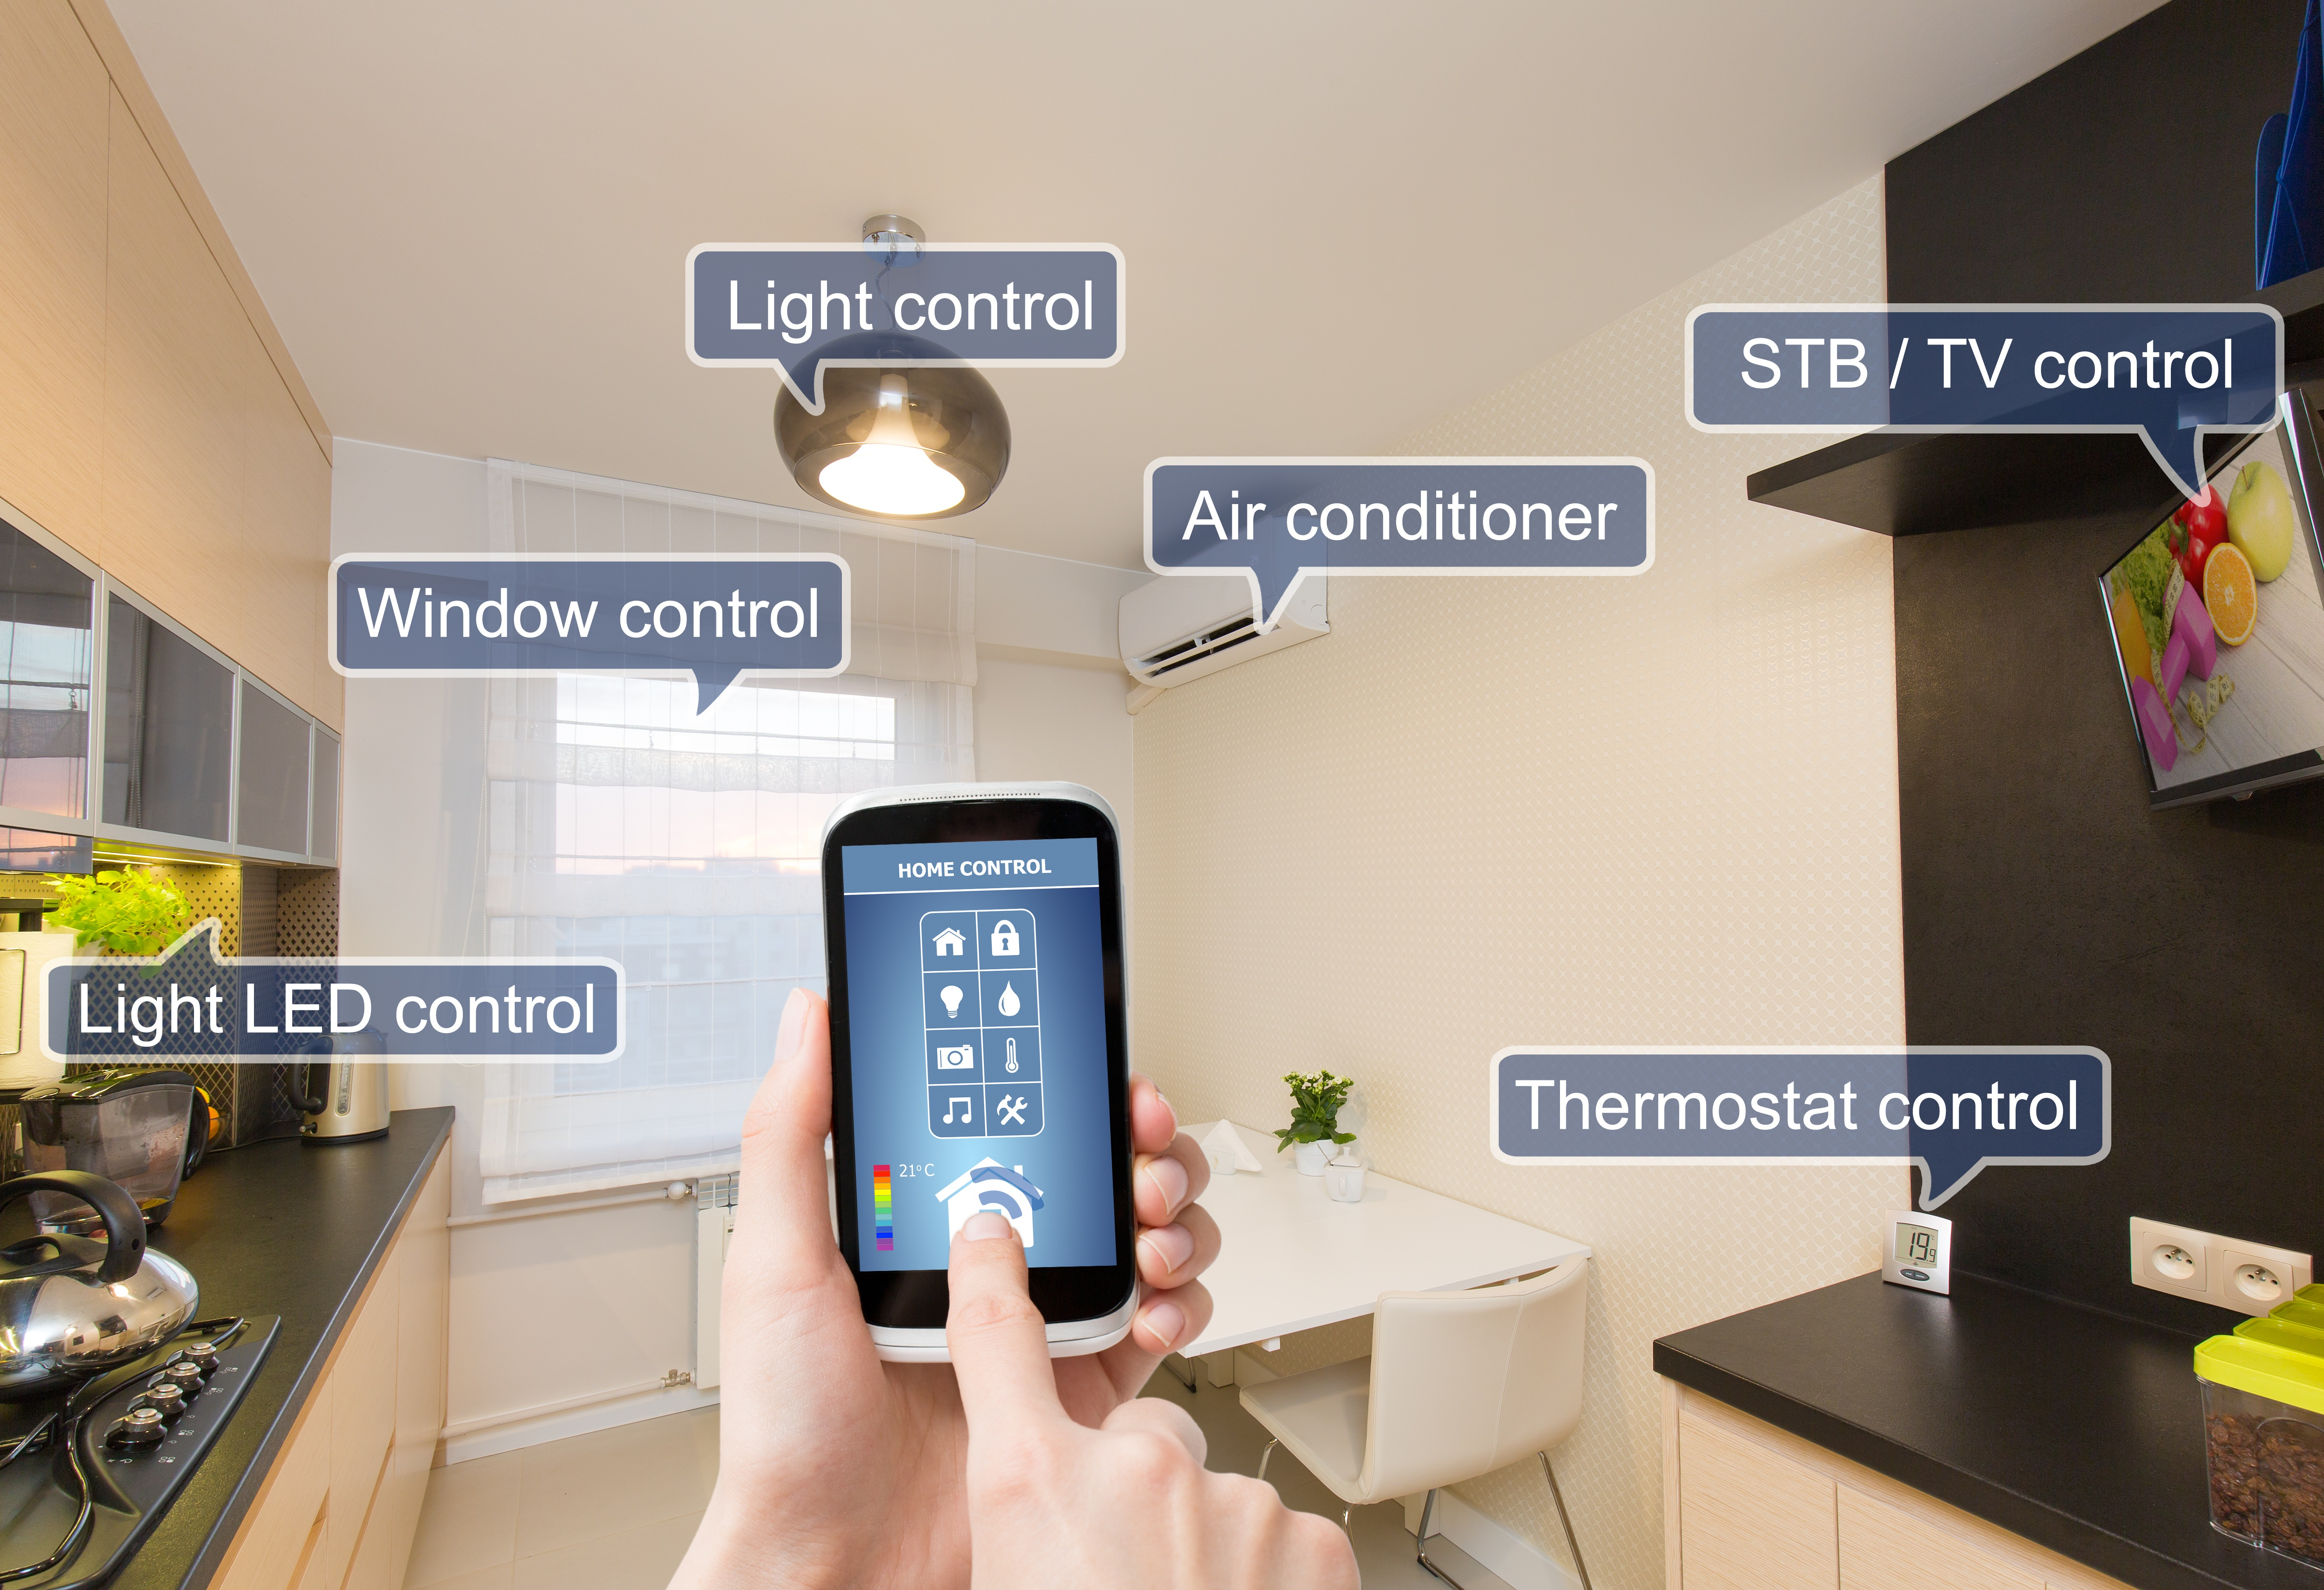 Bluetooth 5: Making Your Smart Home a Reality - Tensilica, Design ...